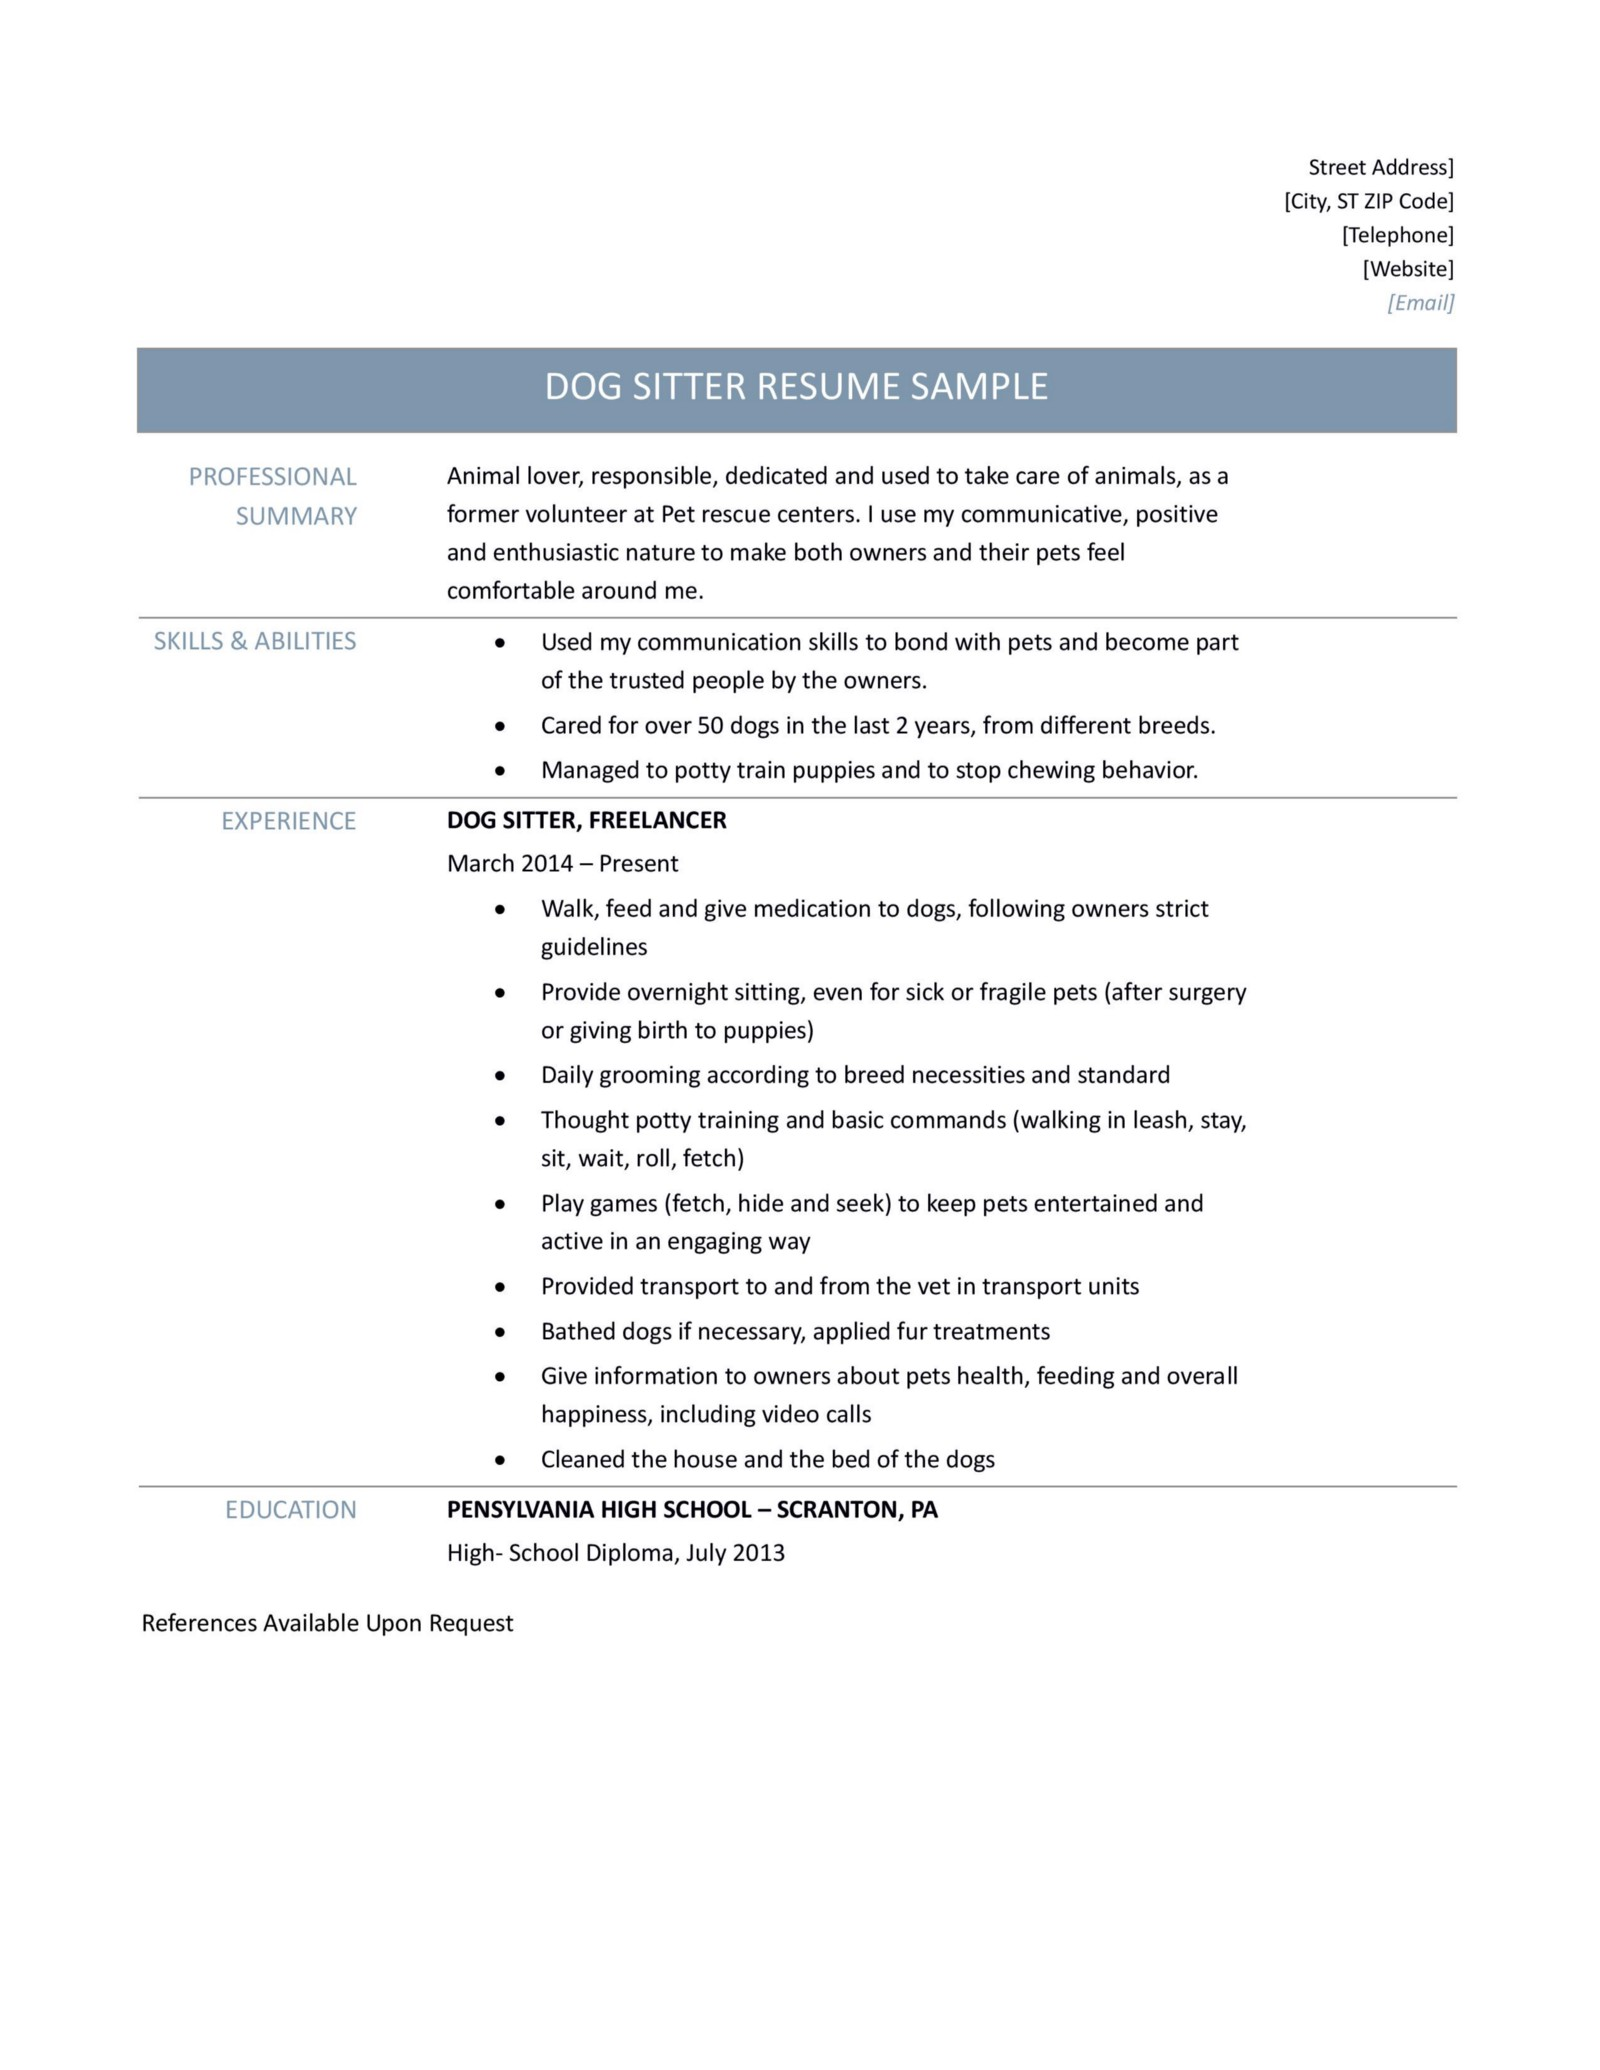 Dog Sitter Resume Samples Tips and Template – Online Resume Builders ...